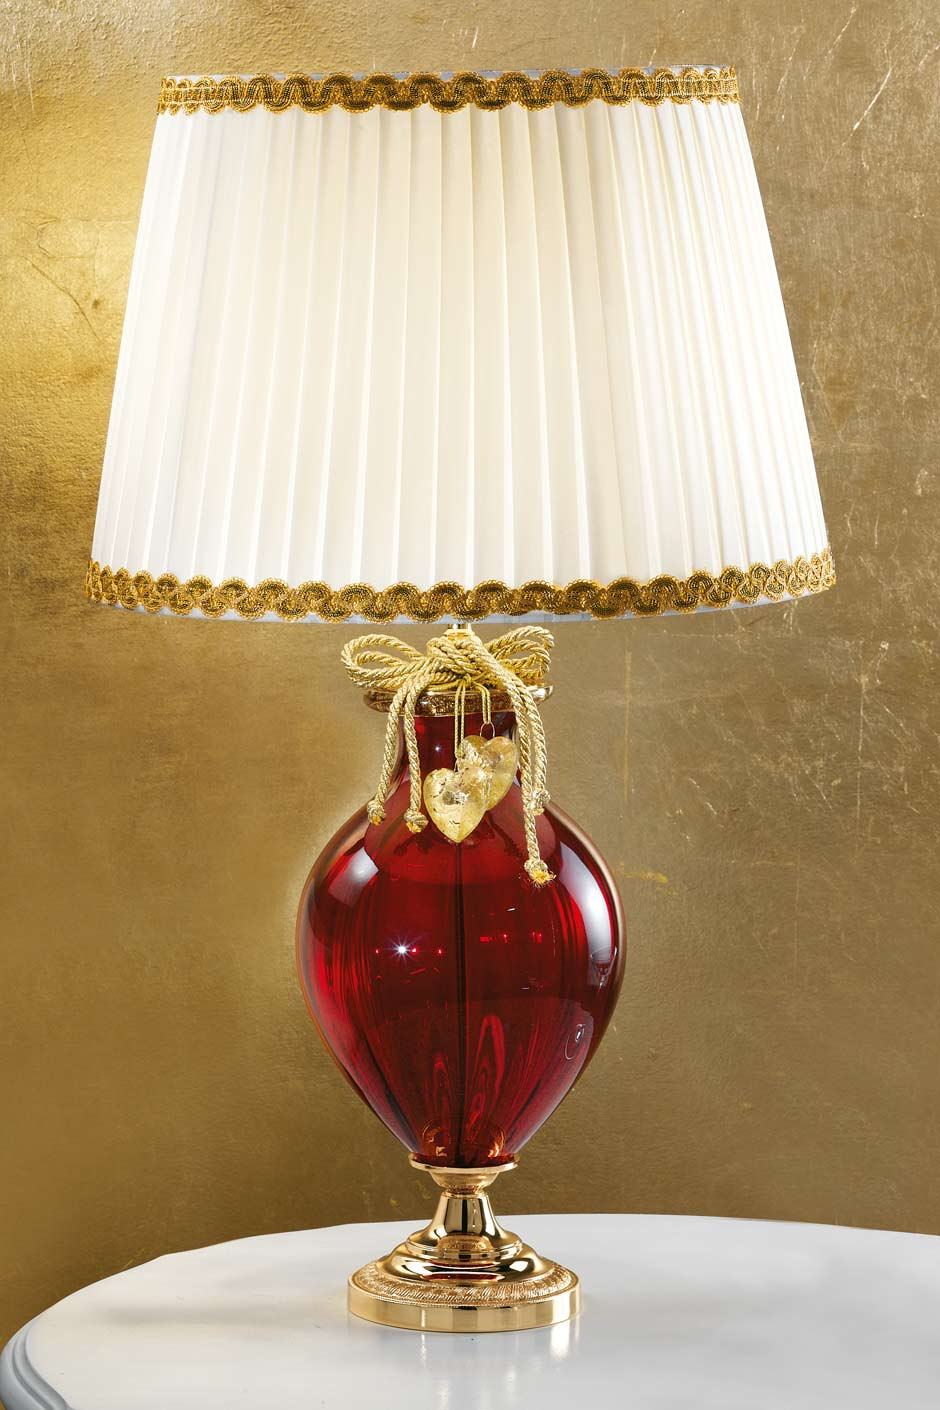 Red and gold crystal glass table lamp with white shade. Masiero.